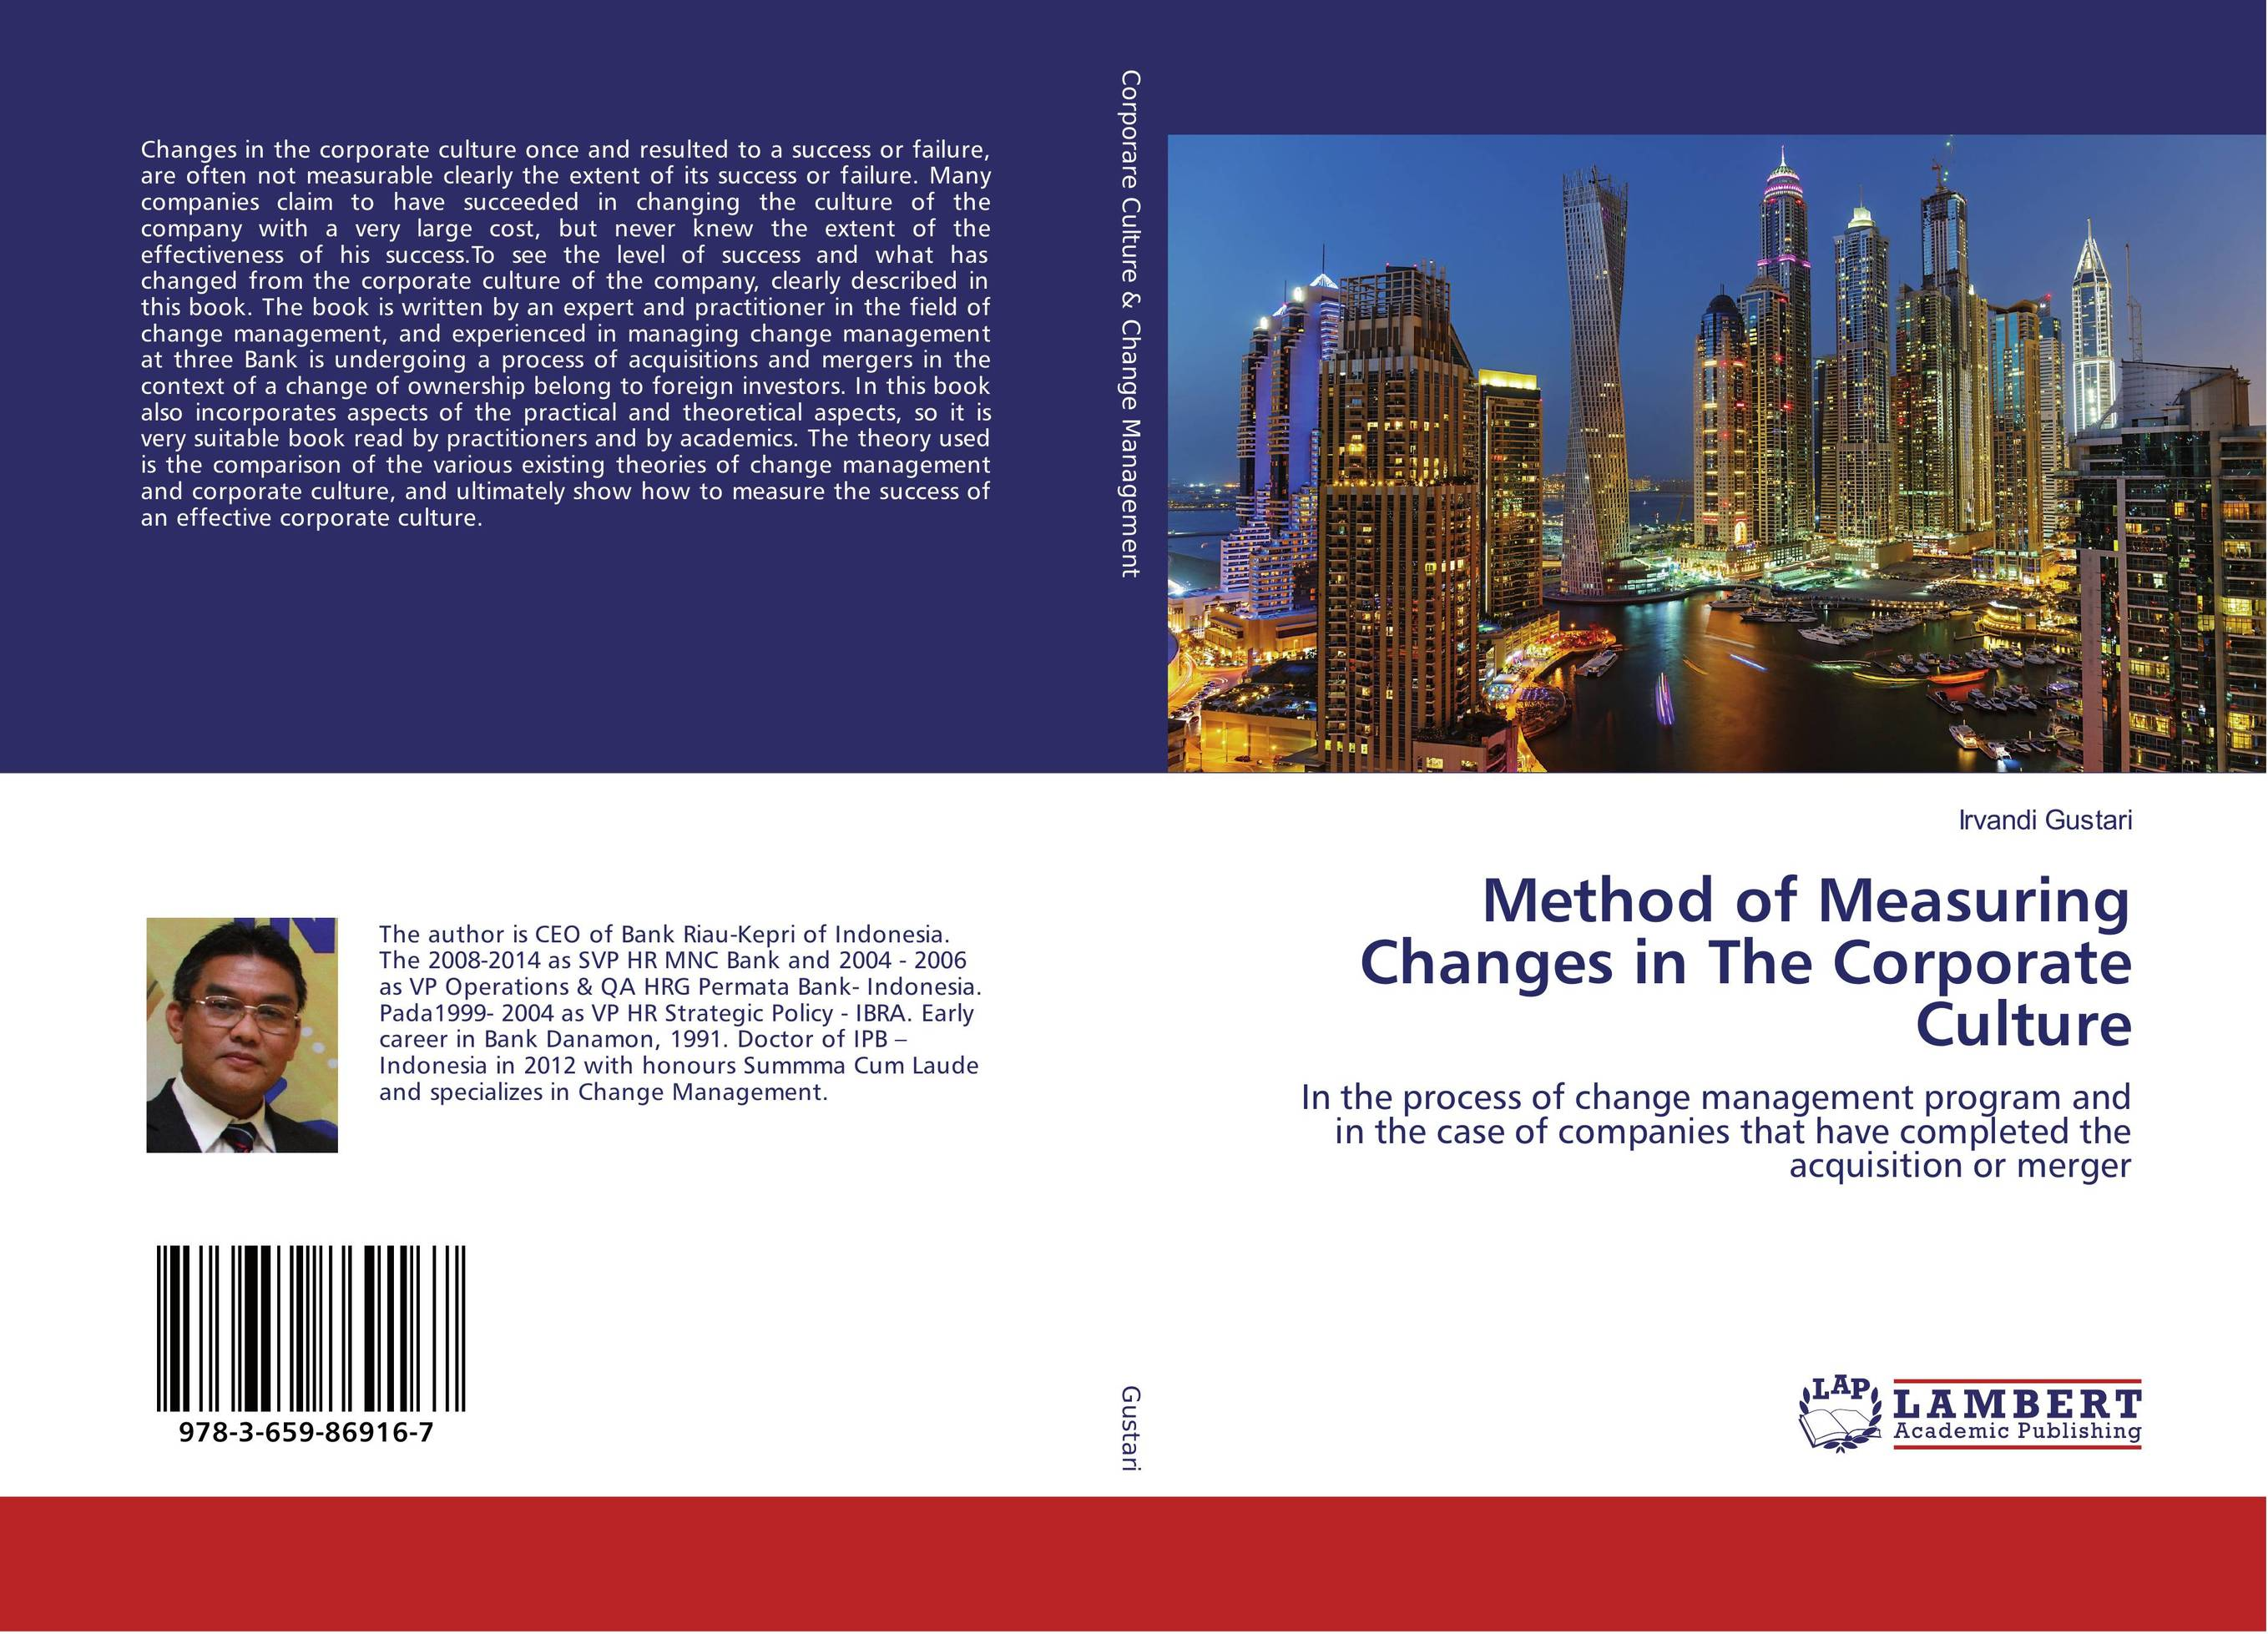 Method of Measuring Changes in The Corporate Culture